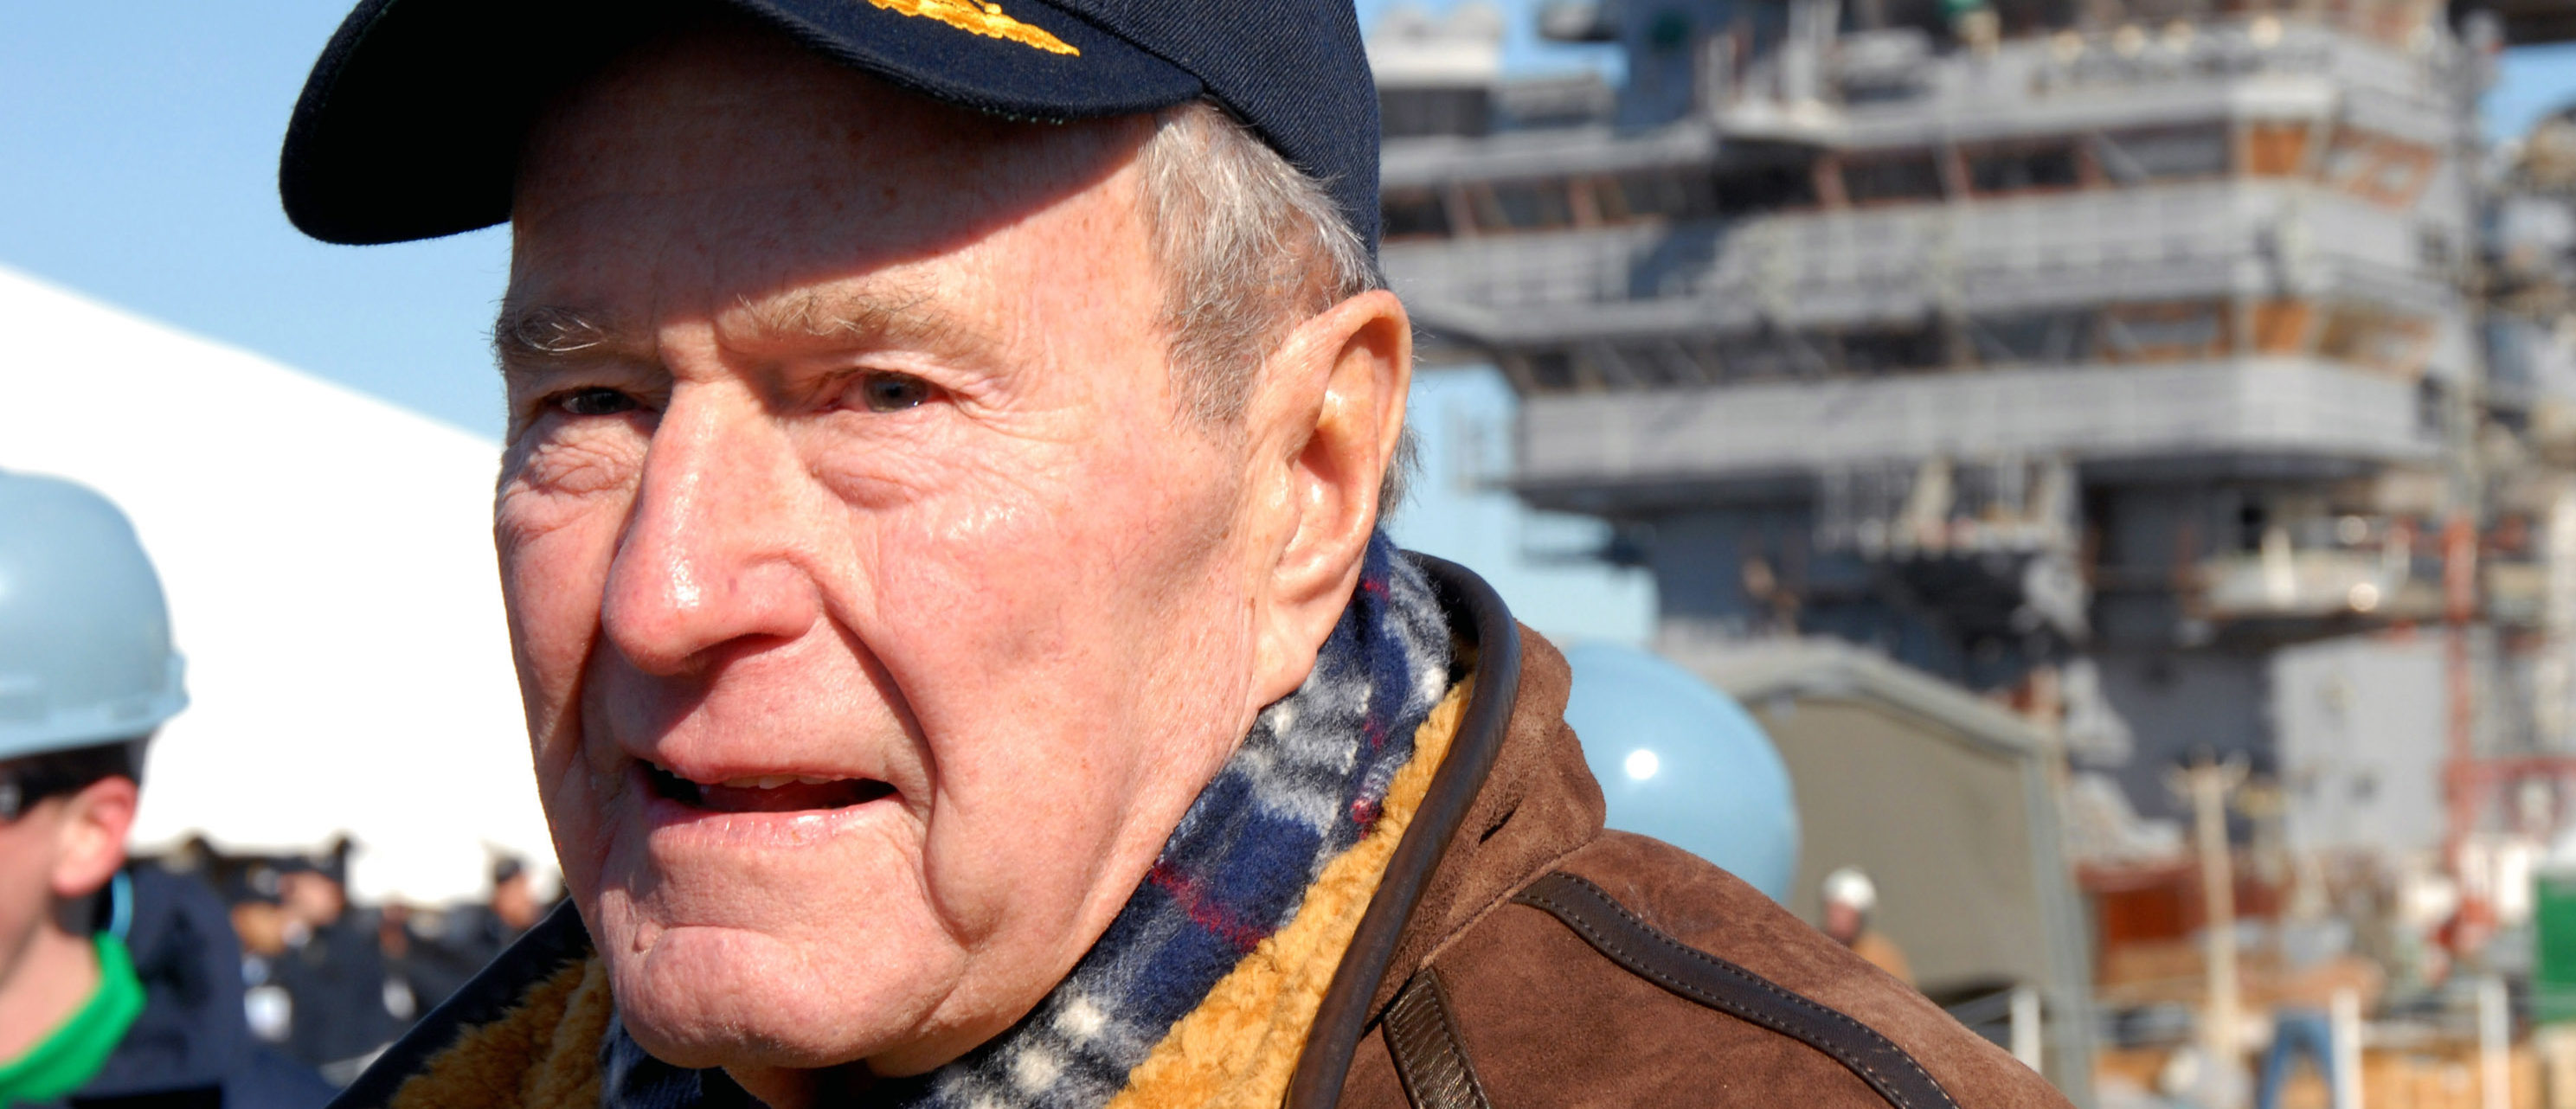 NEWPORT NEWS, VA - JANUARY 25: In this handout provided by the U.S. Navy, former U.S. President George H. W. Bush looks down the flight deck of the Precommissioning Unit (PCU) George H.W. Bush (CVN 77) during the ship's catapult testing ceremony January 25, 2008 in Newport, Virginia. Narina Reynoso/U.S. Navy via Getty Images